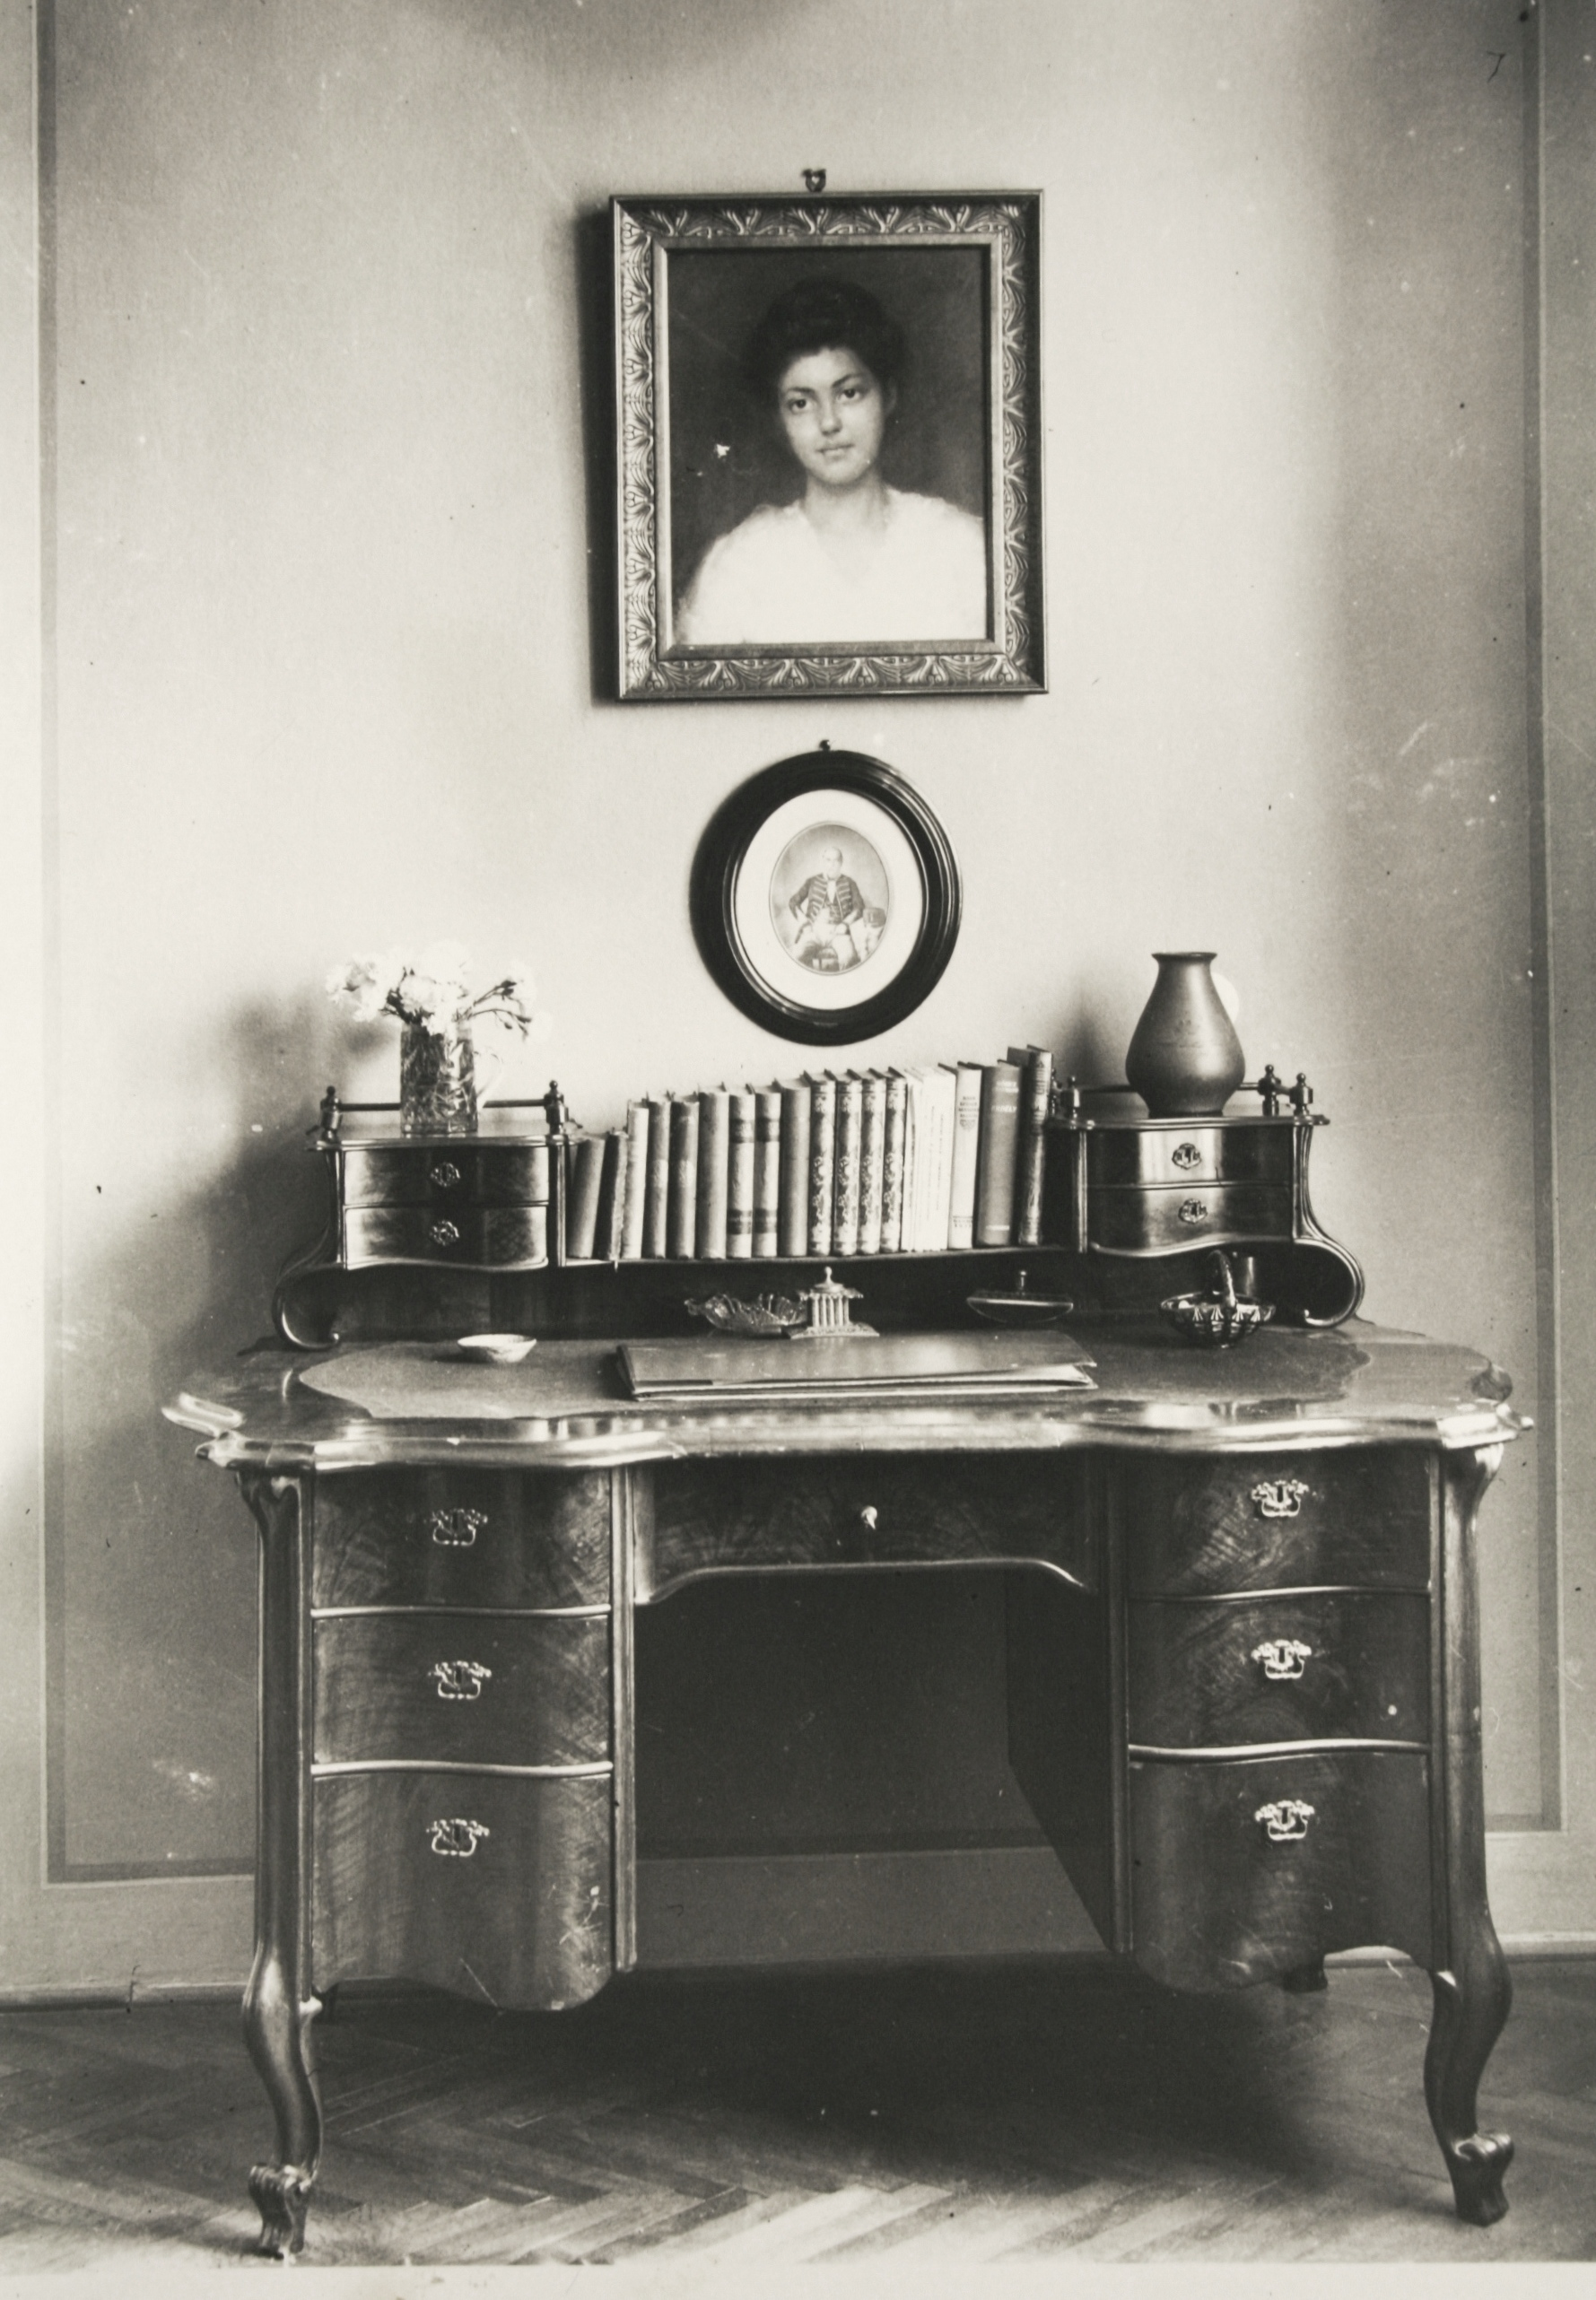 Writing desk of István Bibó Sr. Szeged, 1910s